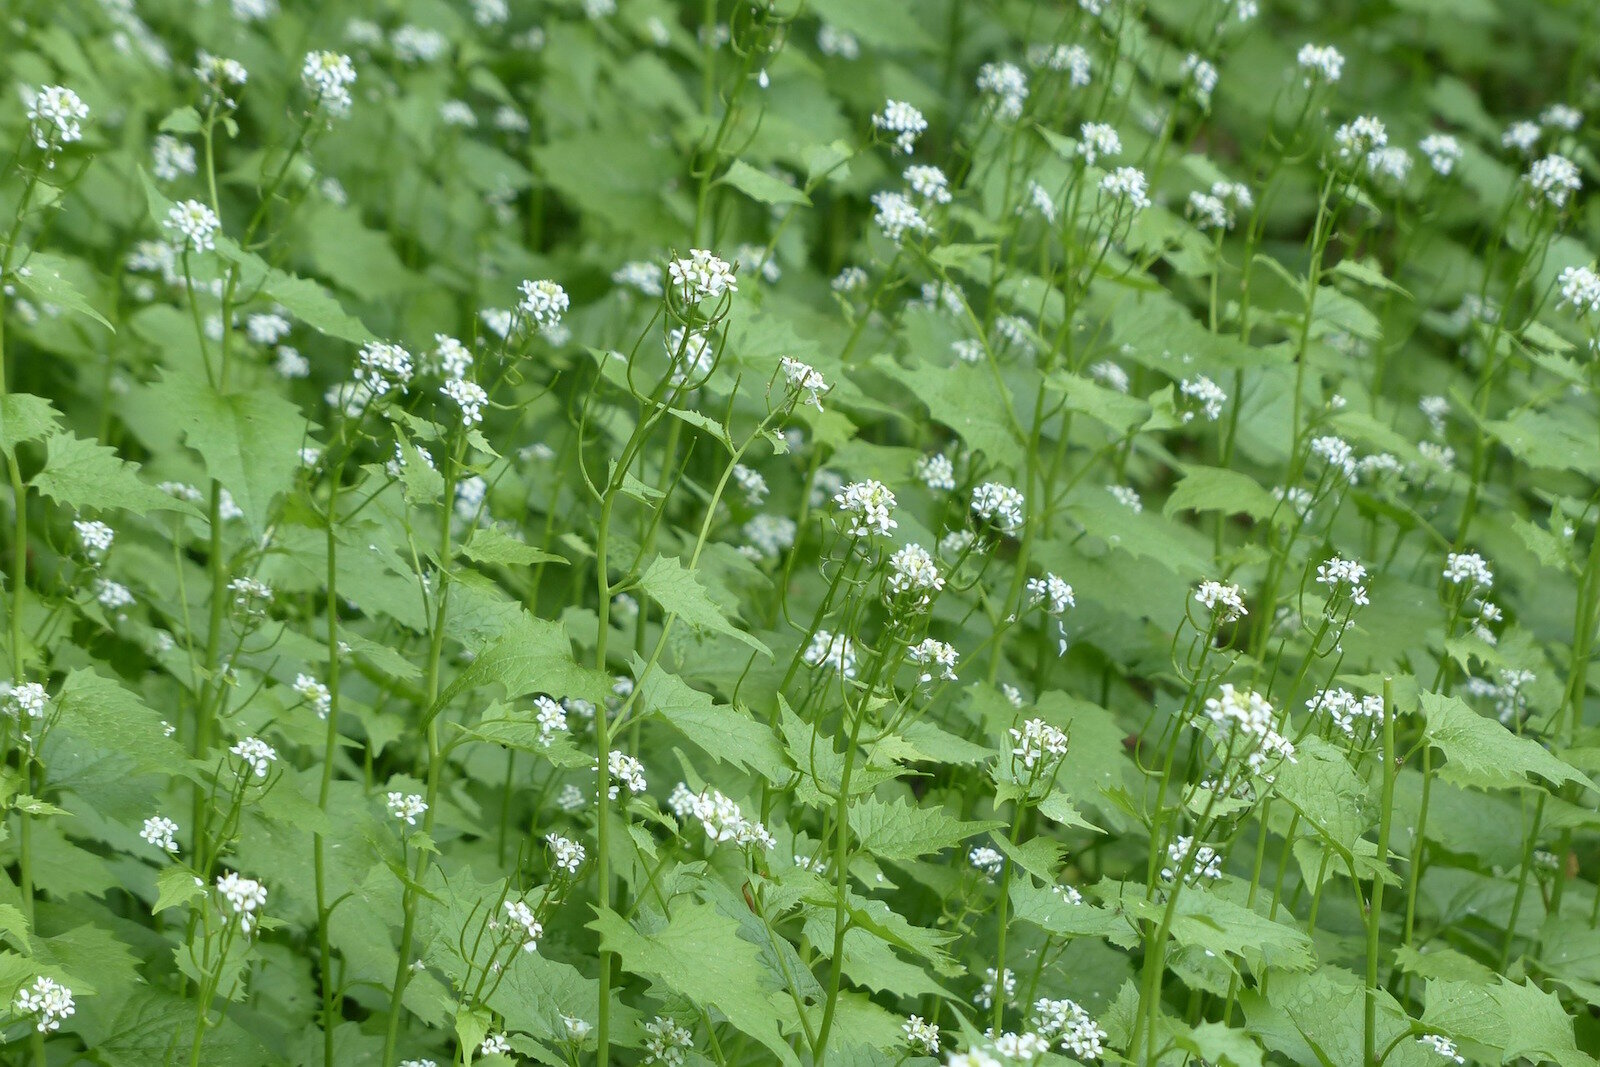 A single garlic mustard plant can produce up to 350 to 7,000 seeds depending on the size of the plant, and these seeds can stay viable in the ground for up to 10 years.